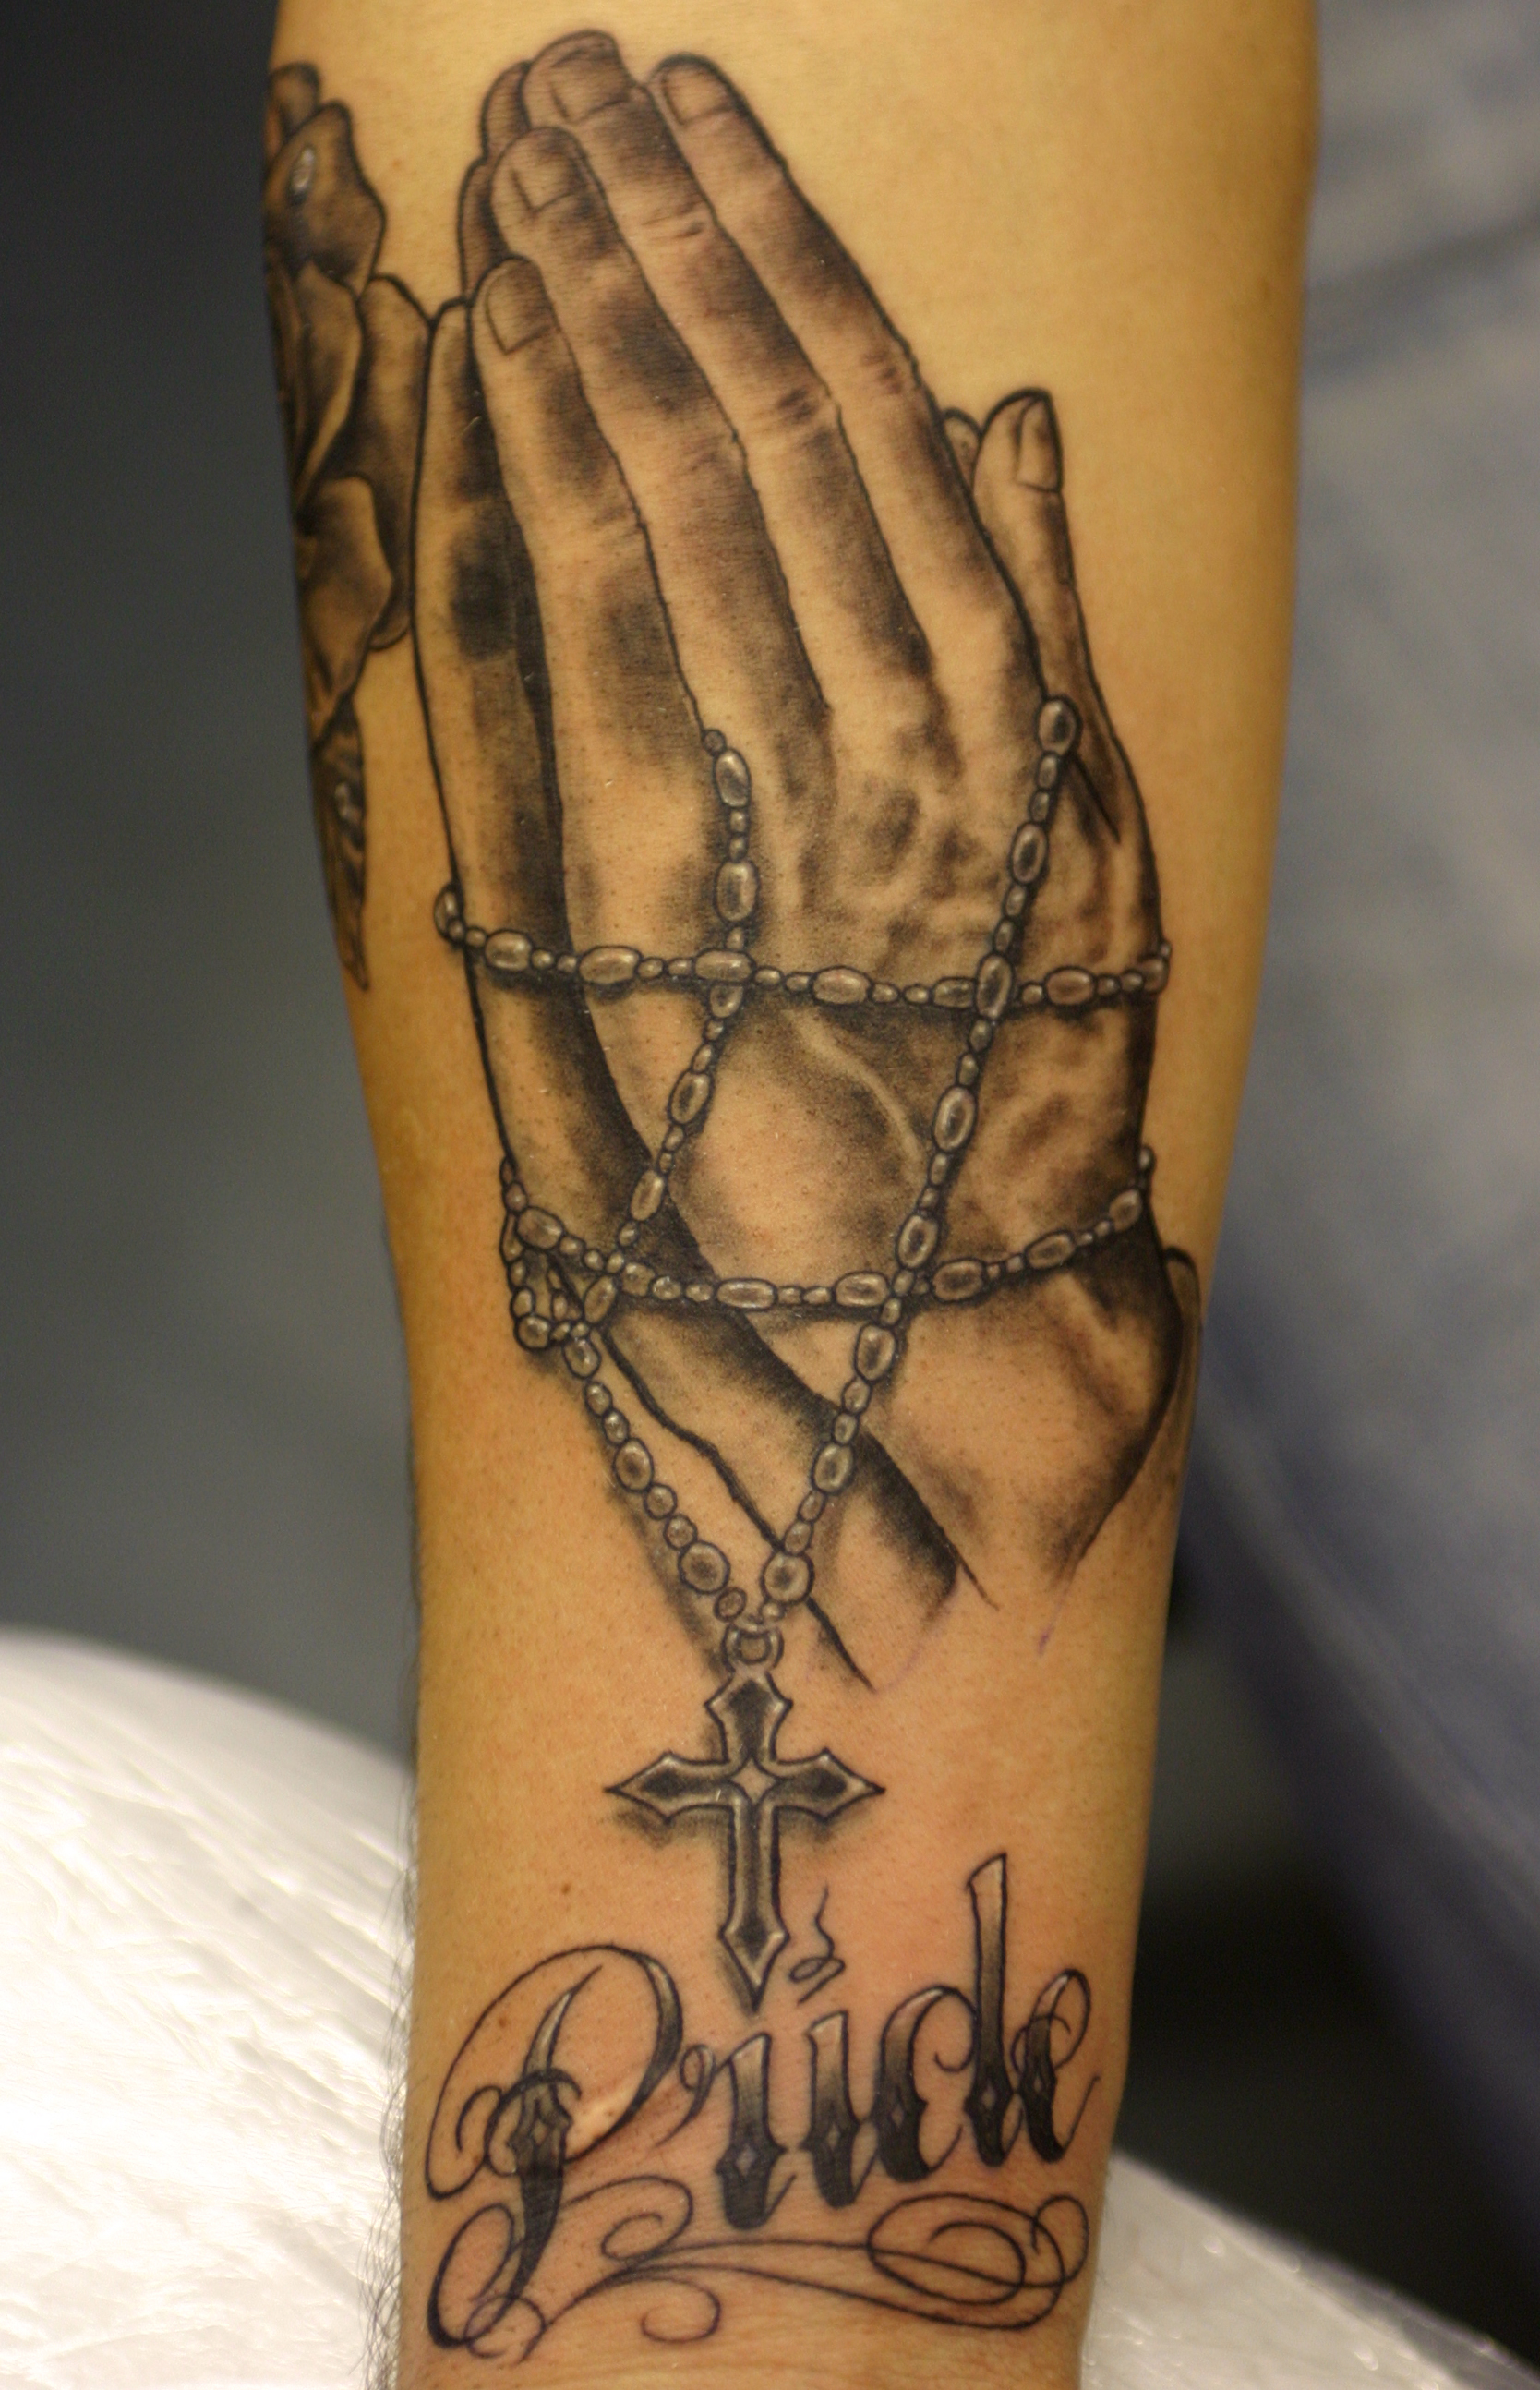 Praying Hands Tattoos Designs Ideas And Meaning Tattoos Ideas And Designs